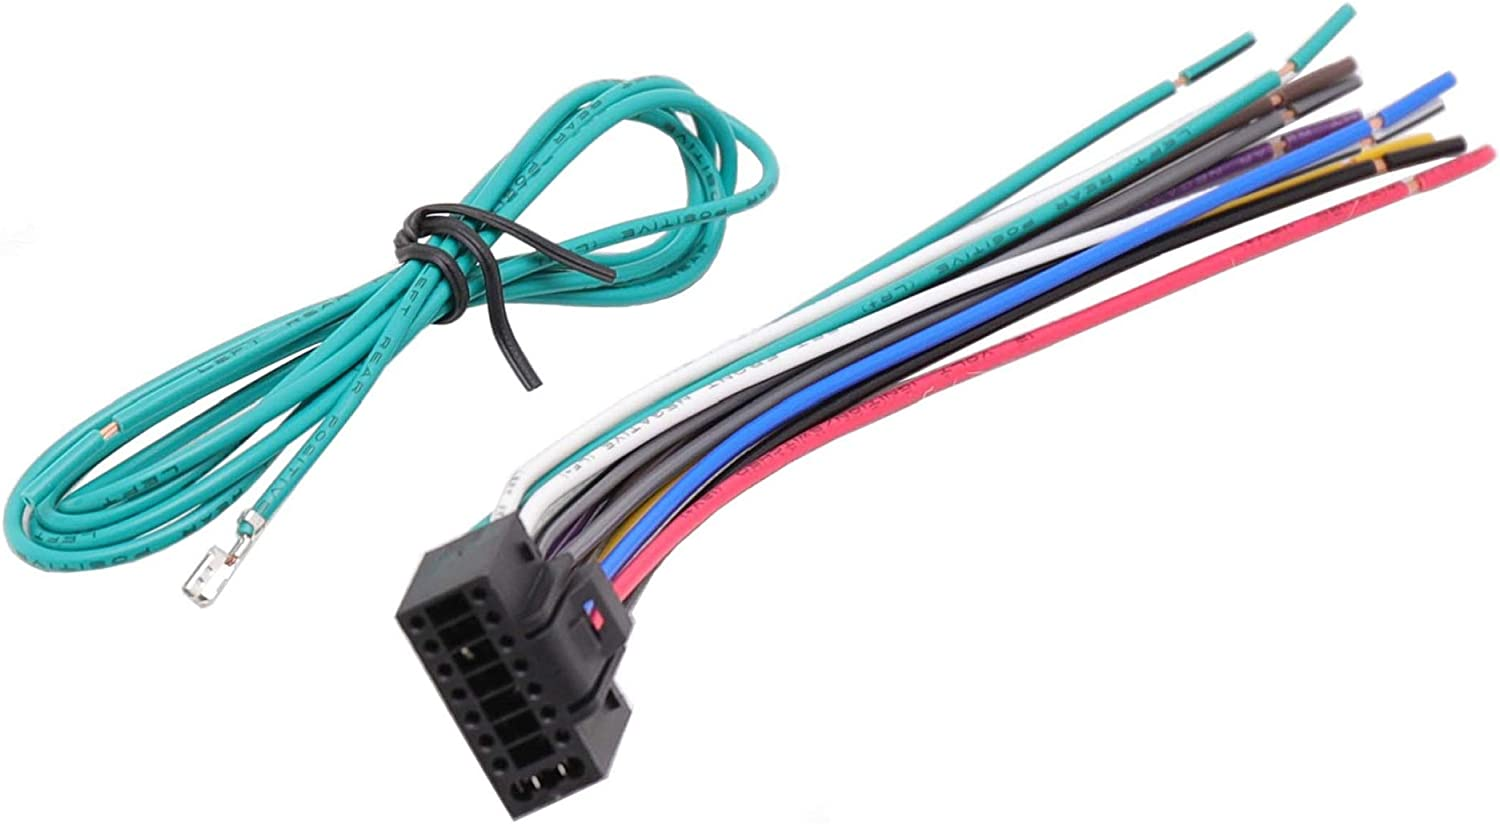 RDBS 40 Pin Fit for Kenwood Radio Stereo Wiring Harness car ...